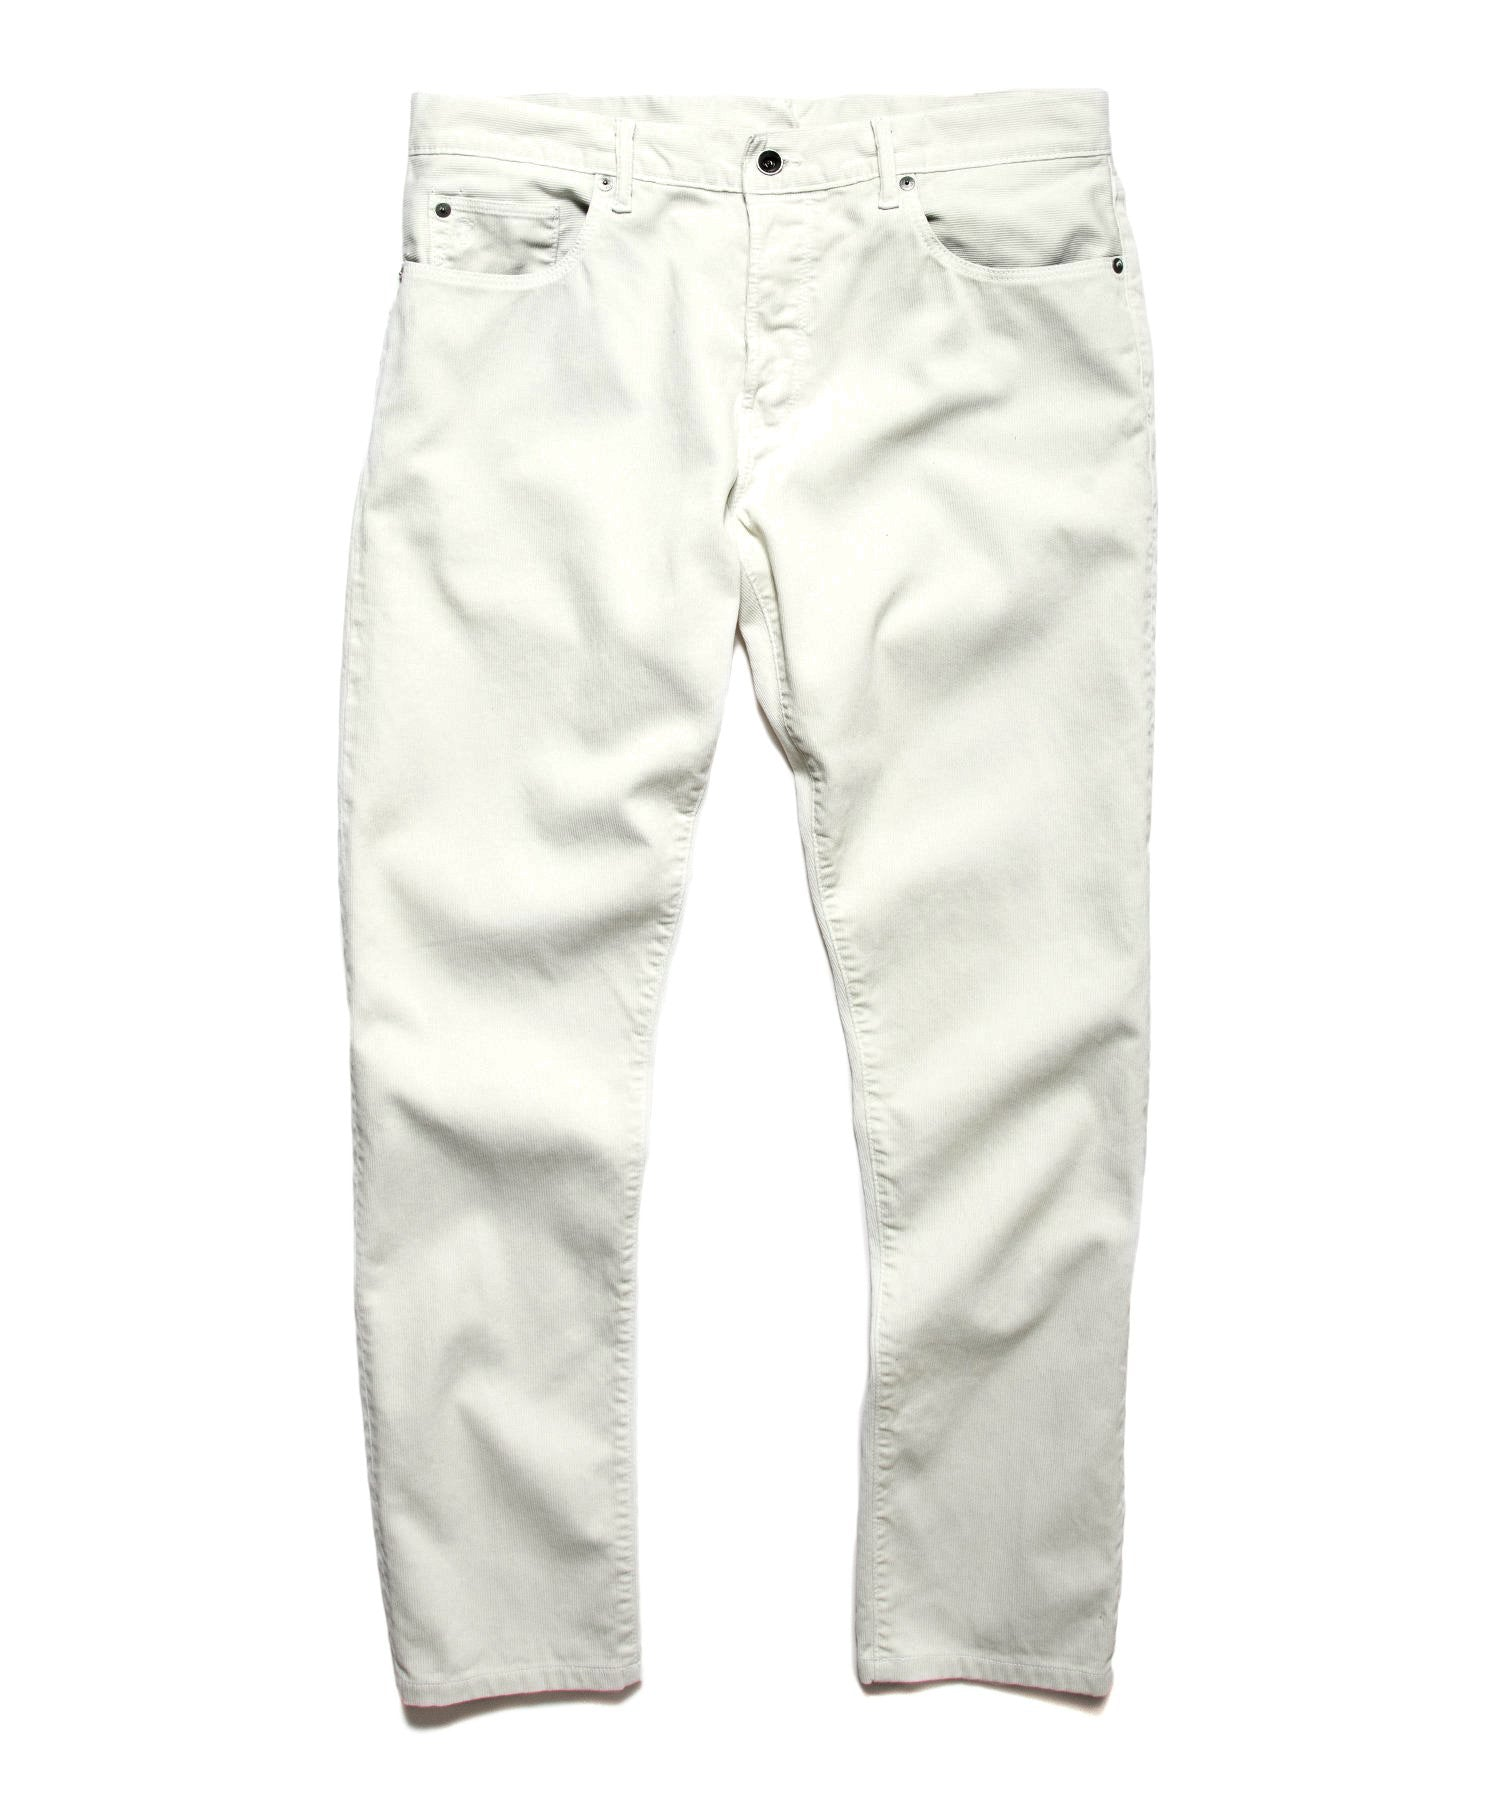 The Gerry 5-Pocket Bedford Cord in Off White